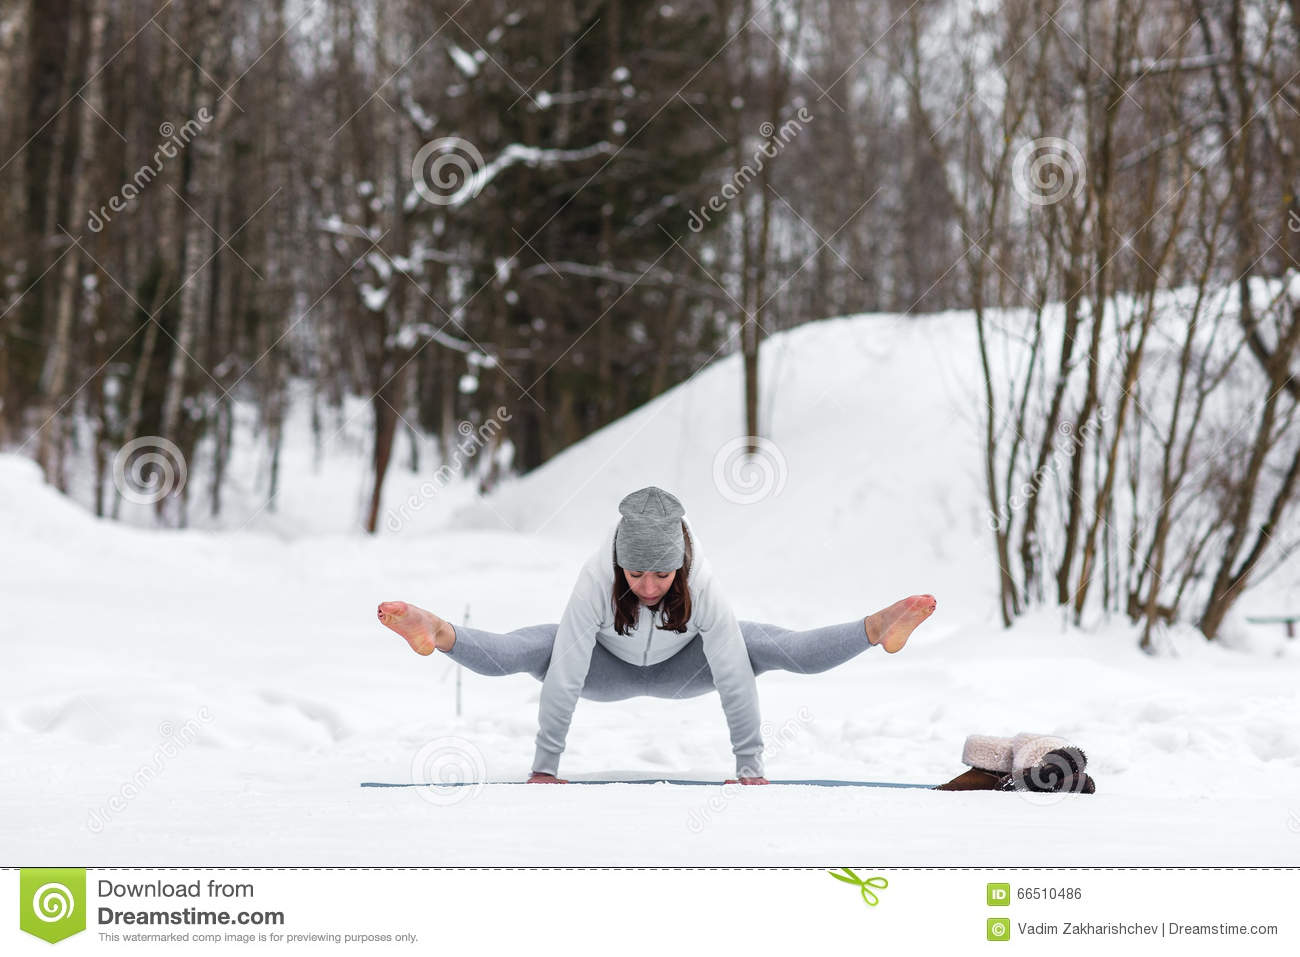 https://thumbs.dreamstime.com/z/winter-yoga-session-beautiful-place-young-athletic-woman-doing-woods-girl-engaged-fitness-park-66510486.jpg